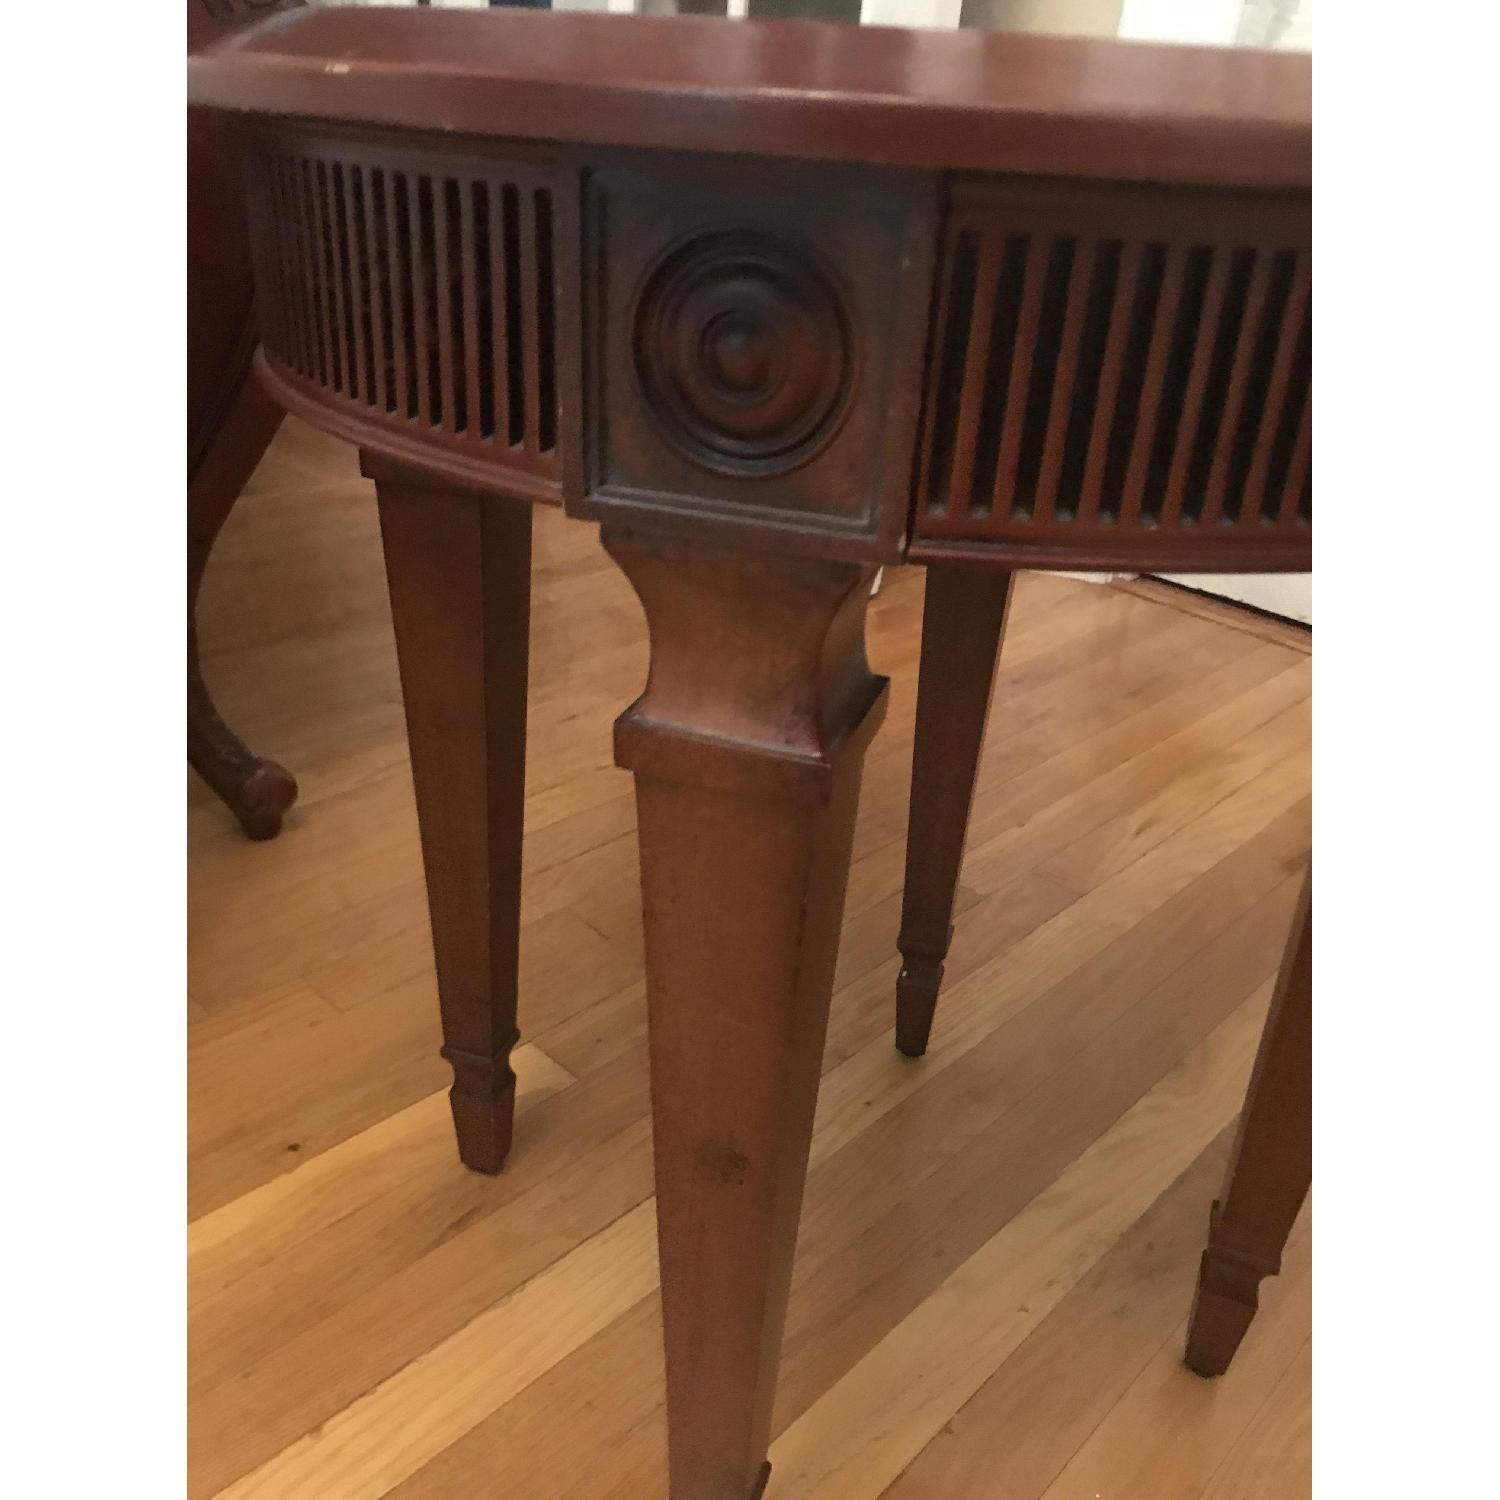 Bombay Company Antique-Style Side Tables - image-4